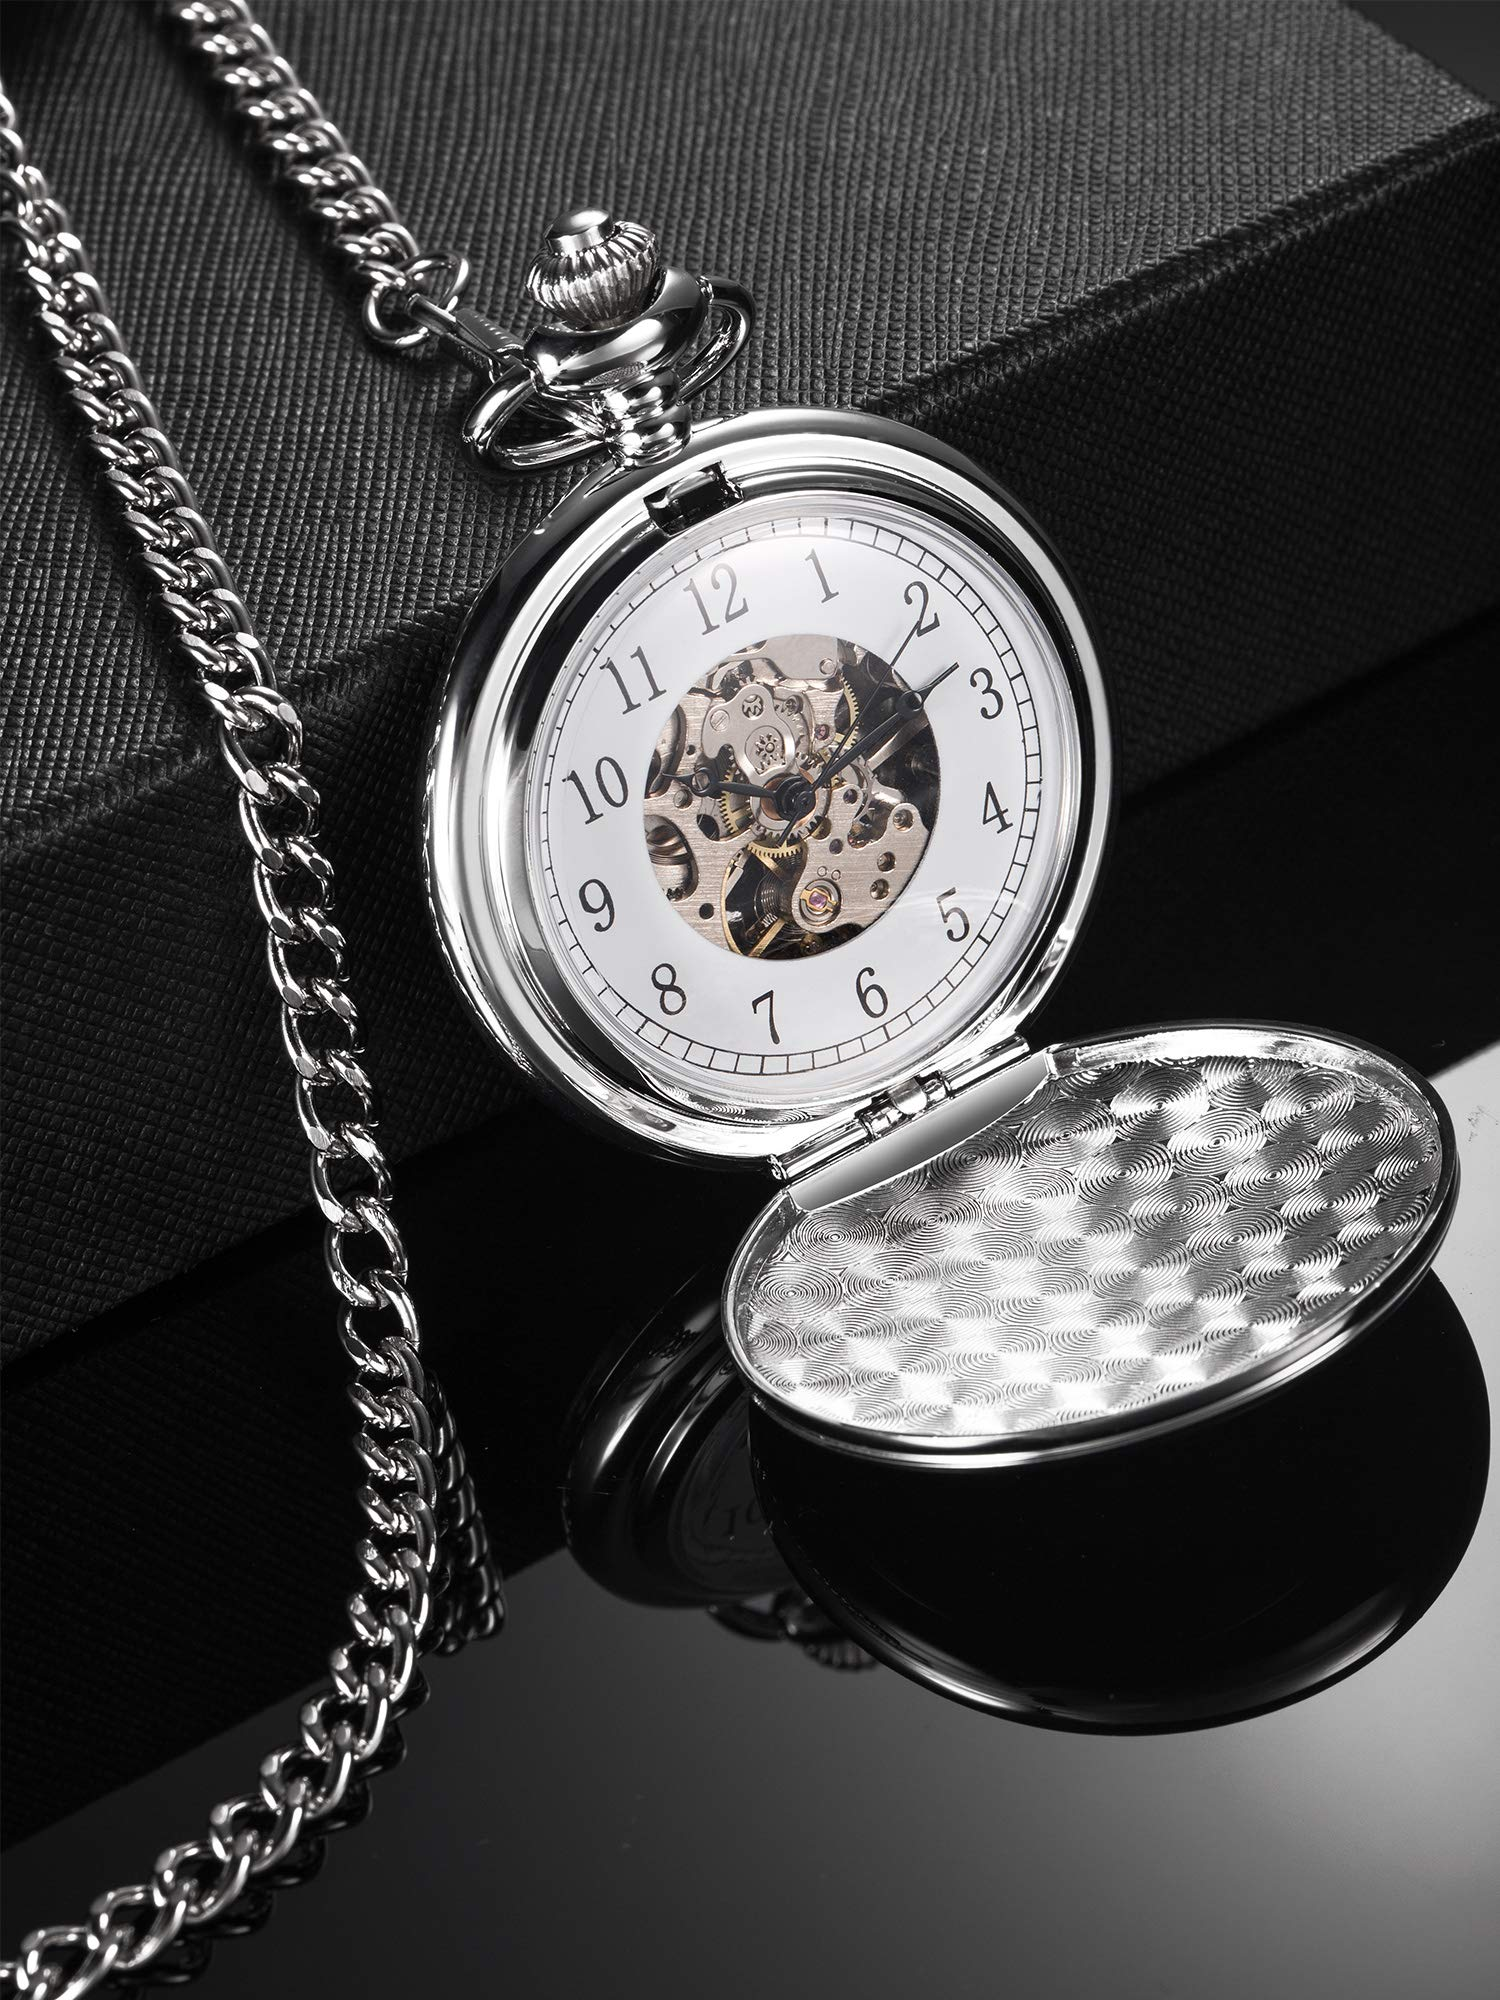 Hicarer Vintage Analog Mechanical Pocket Watch with Chain (Silver) by Hicarer (Image #2)